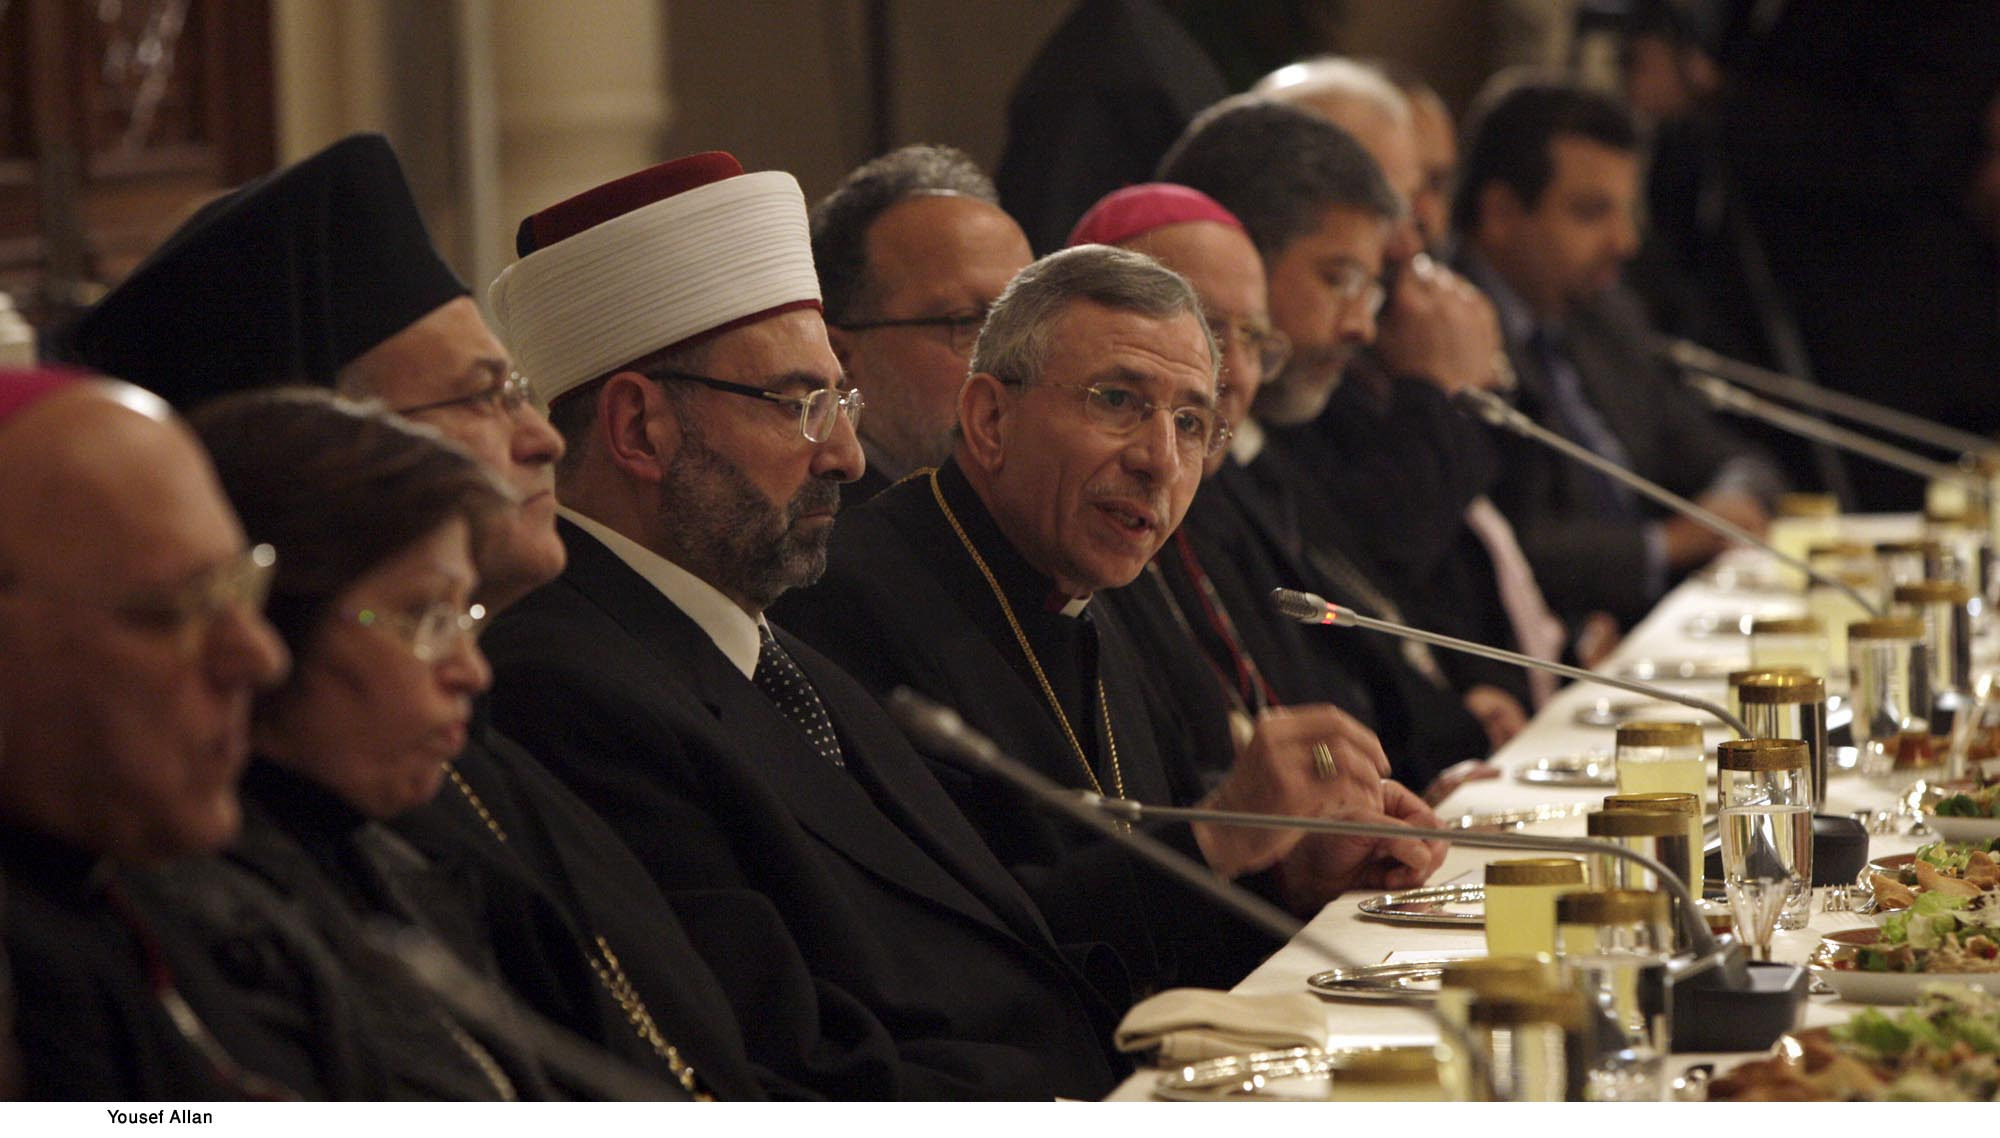 King Abdullah II of Jordan meets Religious Leaders - Pic 1